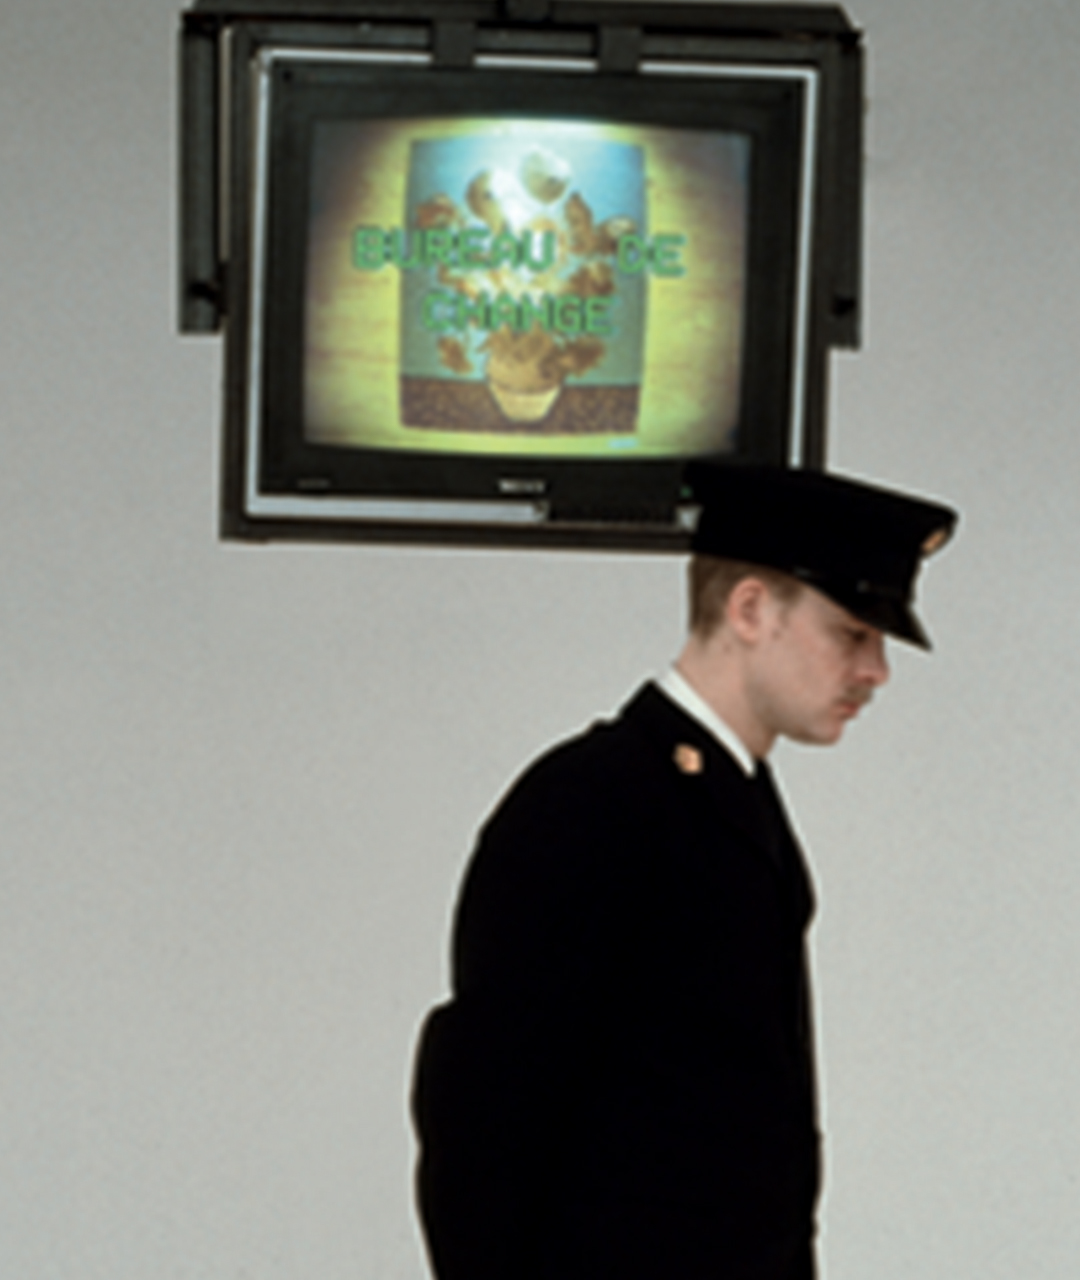 2.Bureau de change guard 2.jpg